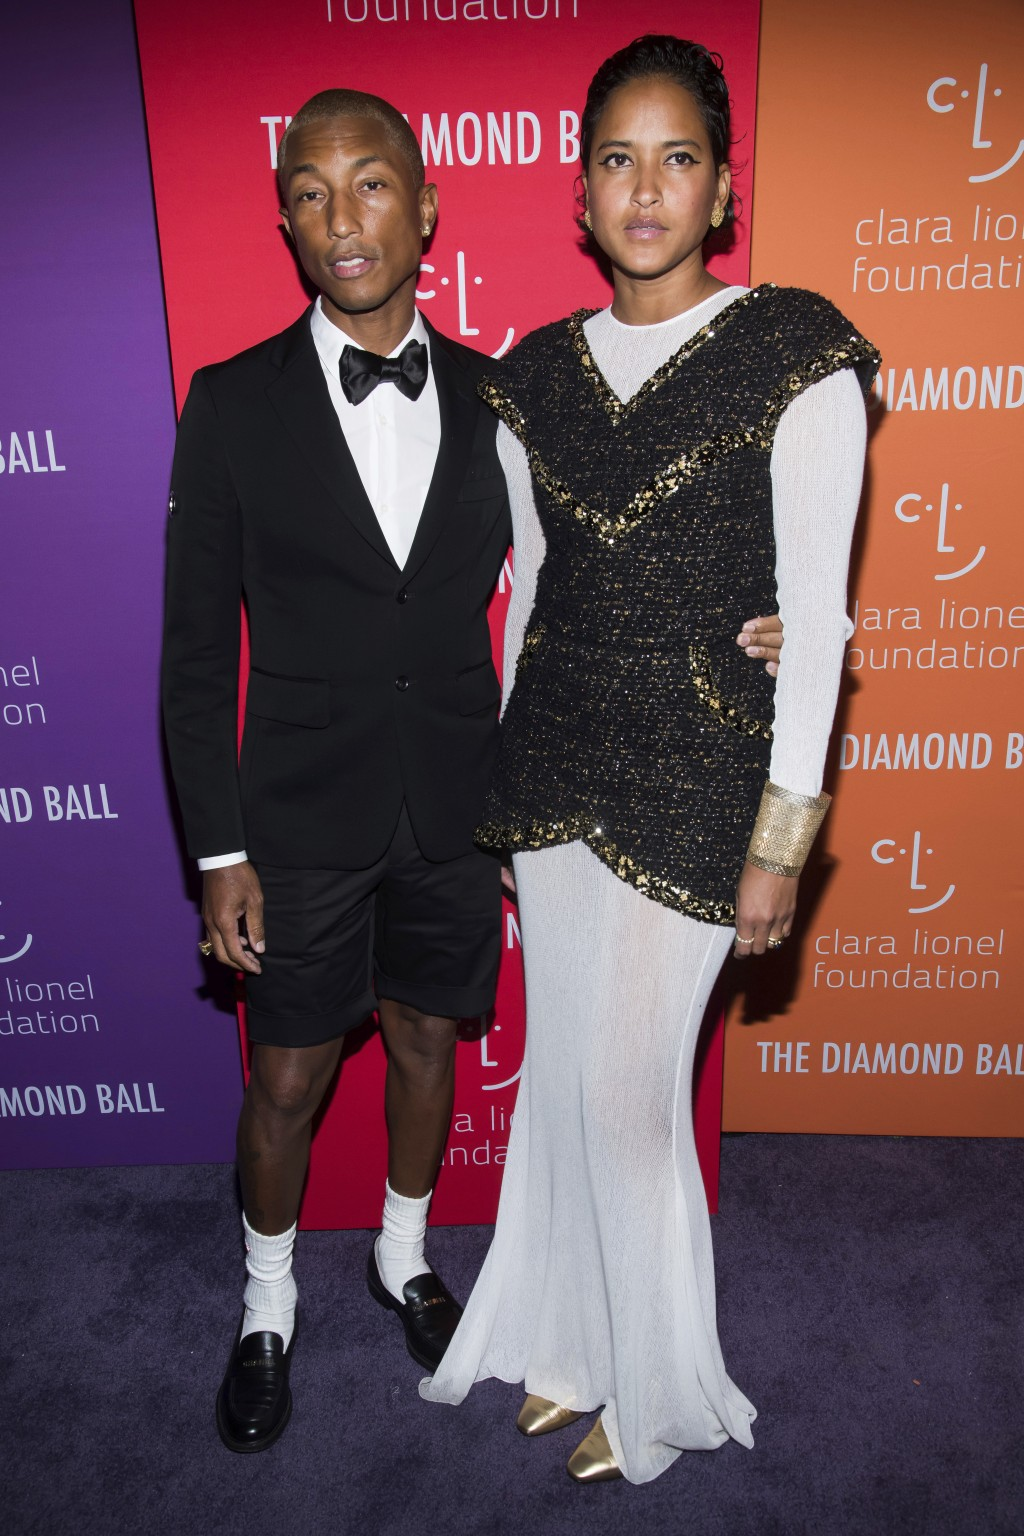 Pharrell Williams and Helen Lasichanh attend the 5th annual Diamond Ball benefit gala at Cipriani Wall Street on Thursday, Sept. 12, 2019, in New York